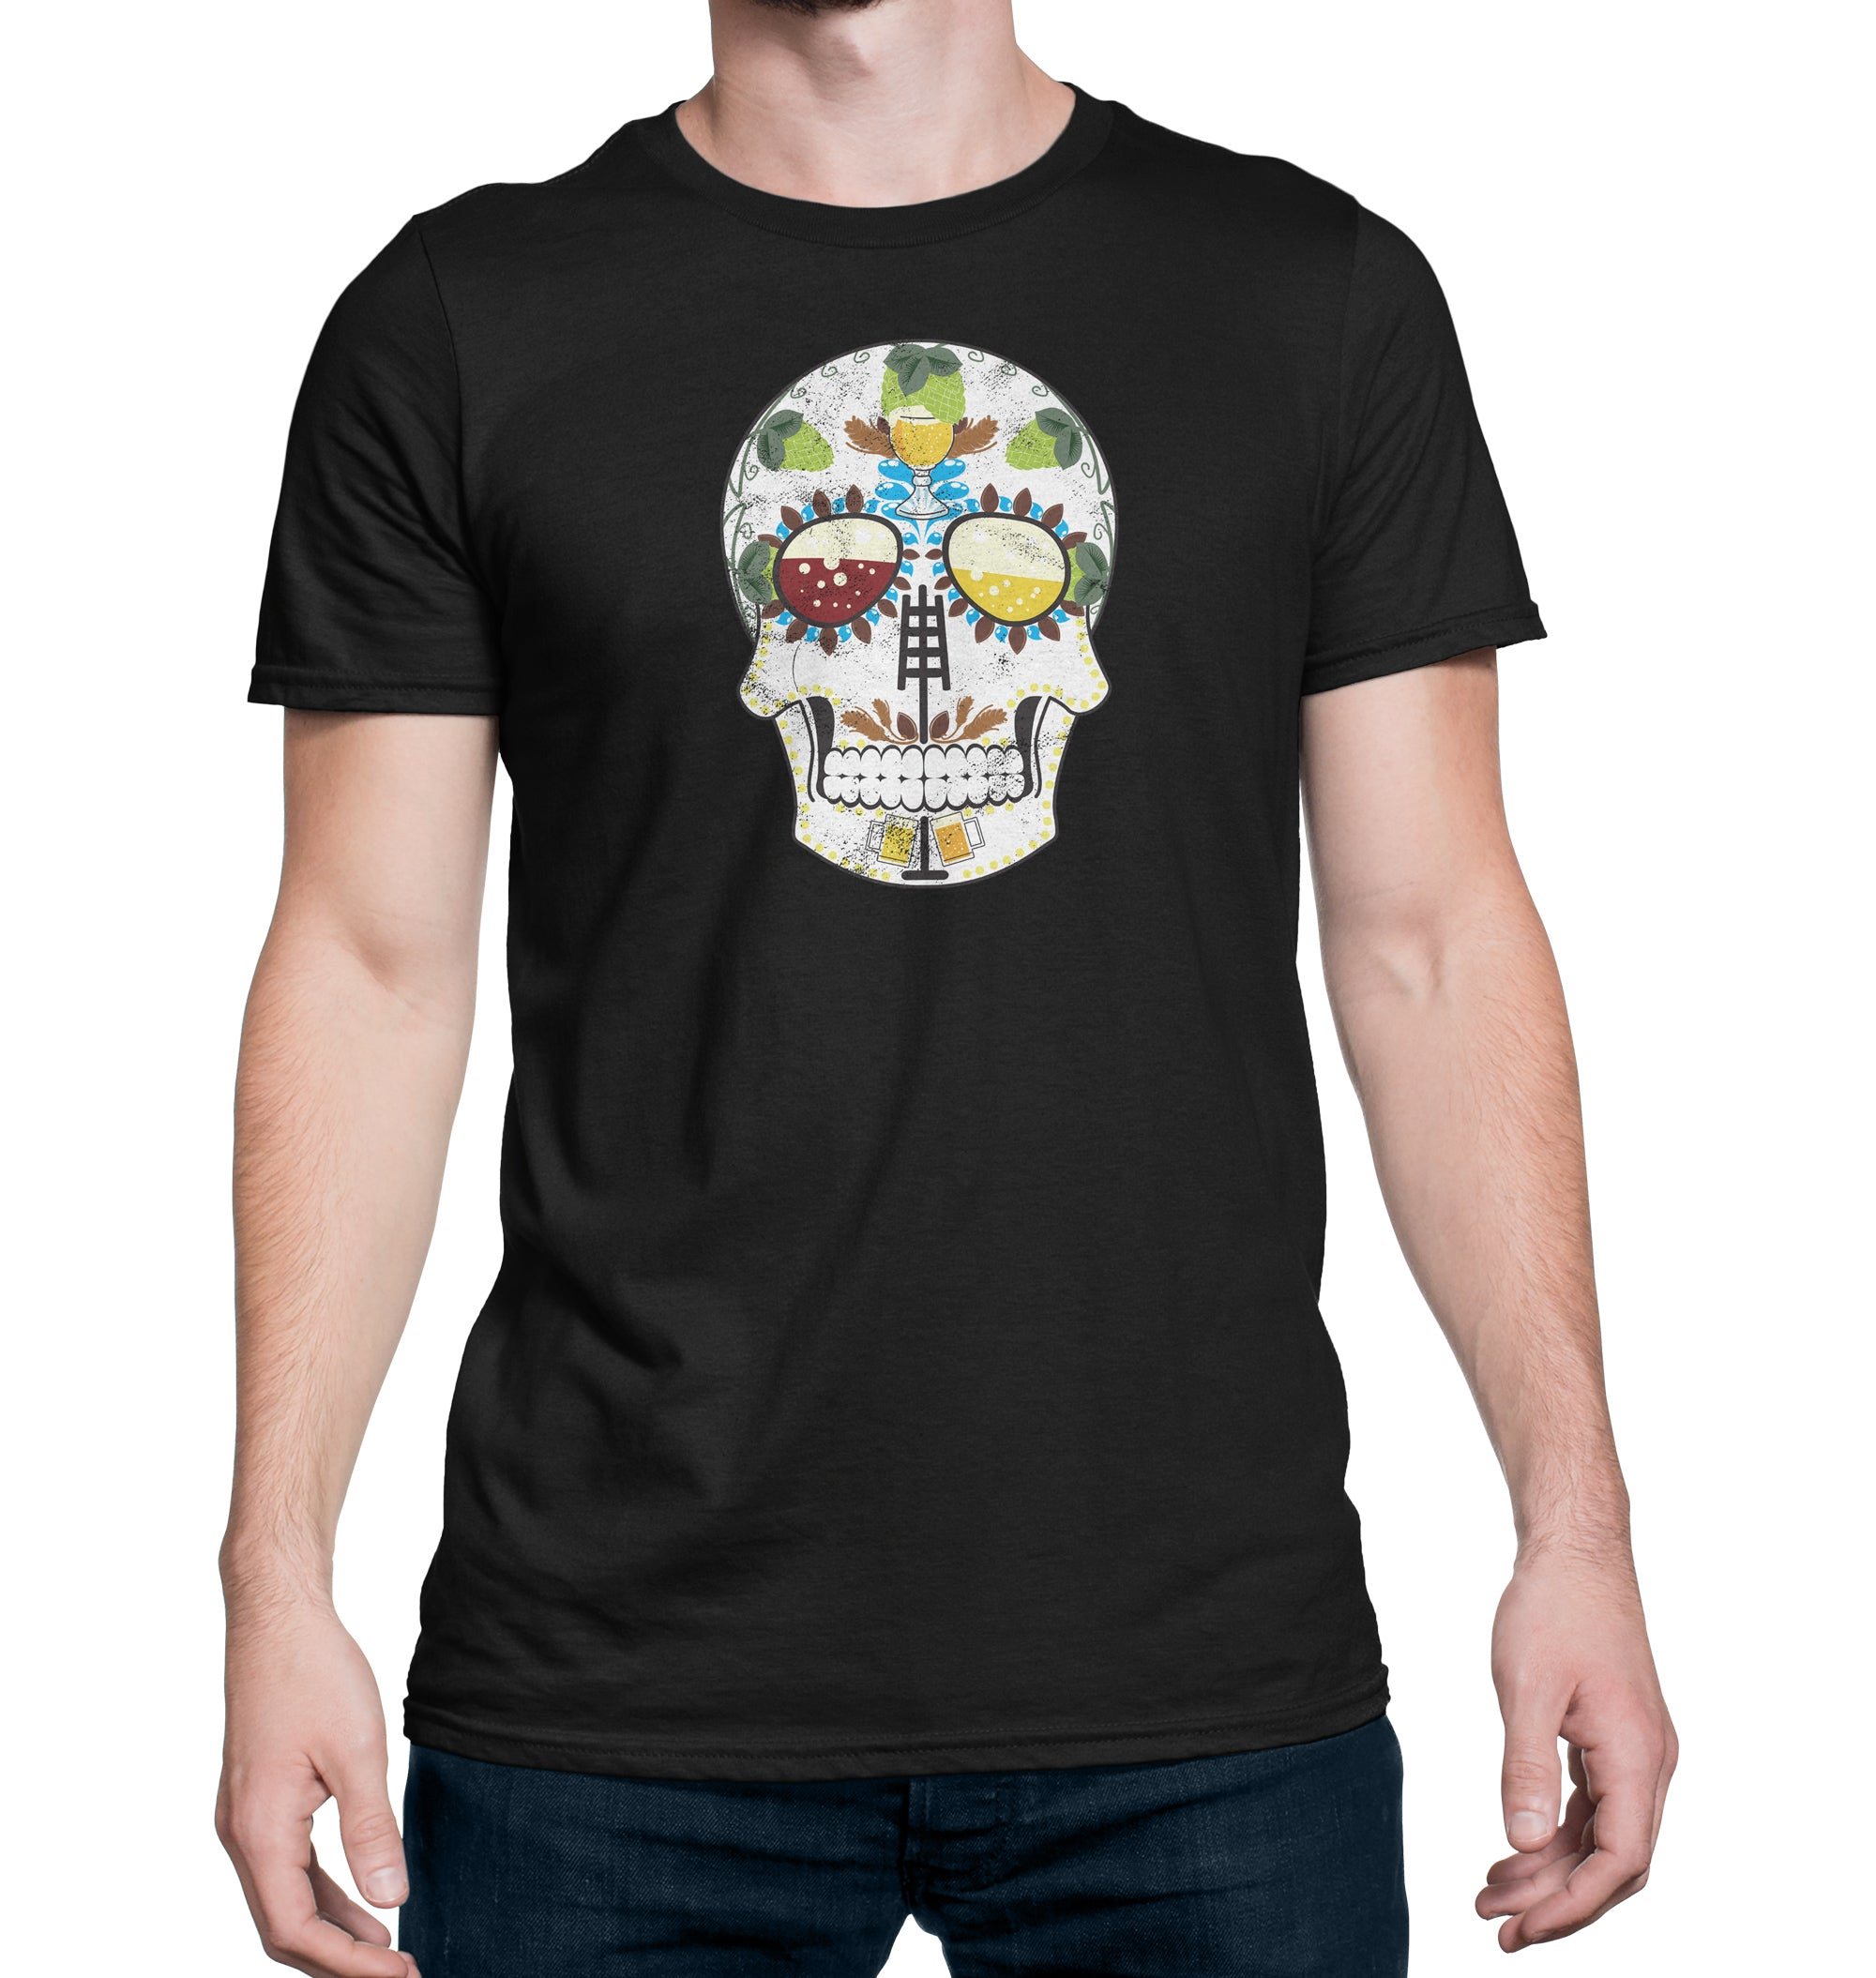 The Brewers Sugar Skull Craft Beer T-Shirt on Model